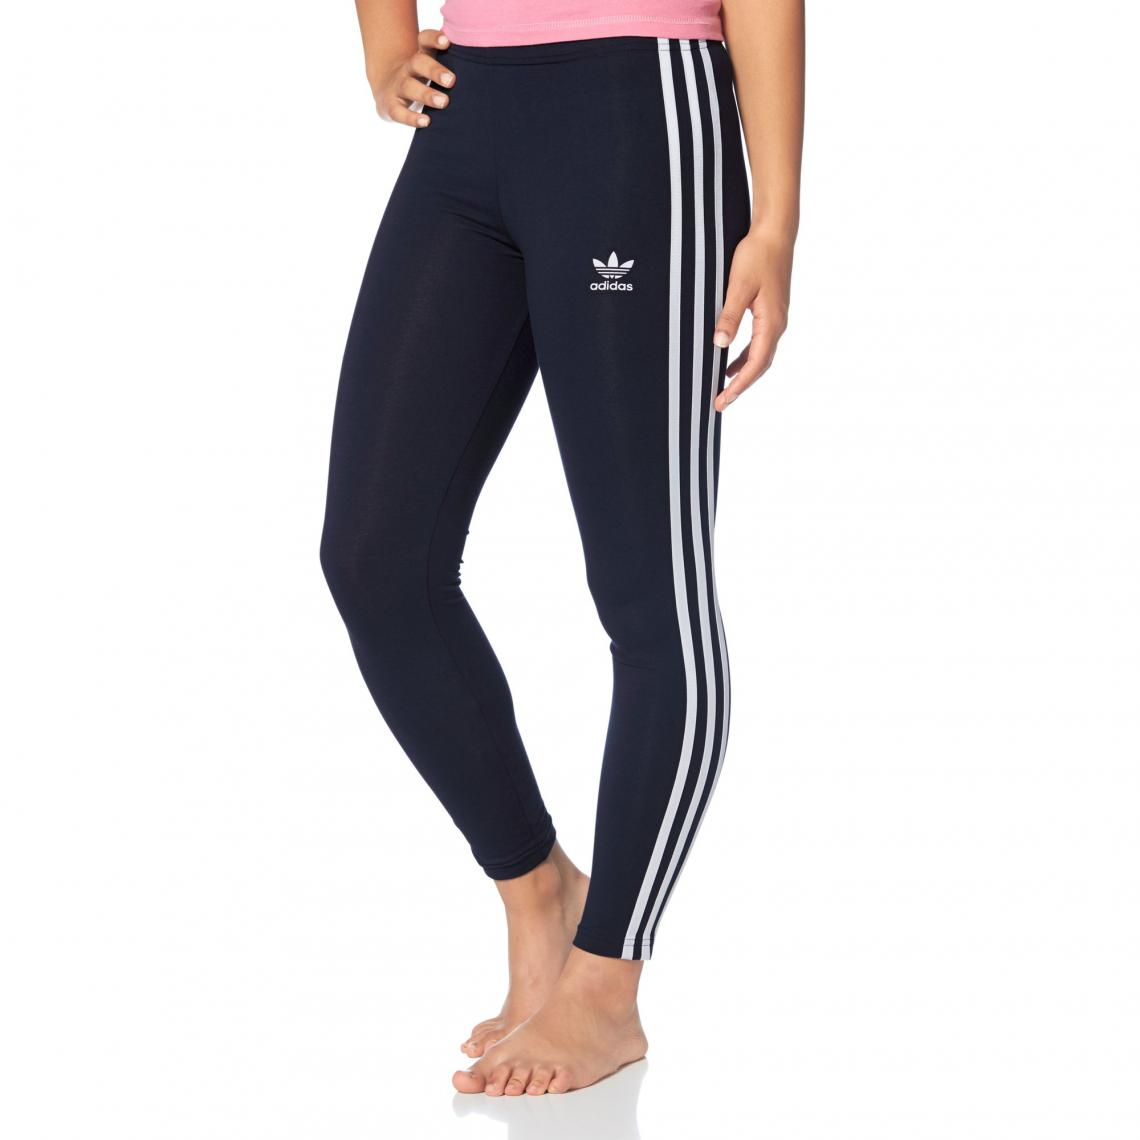 Suisses Legging De Sport Adidas Fille Originals3 rBCexod